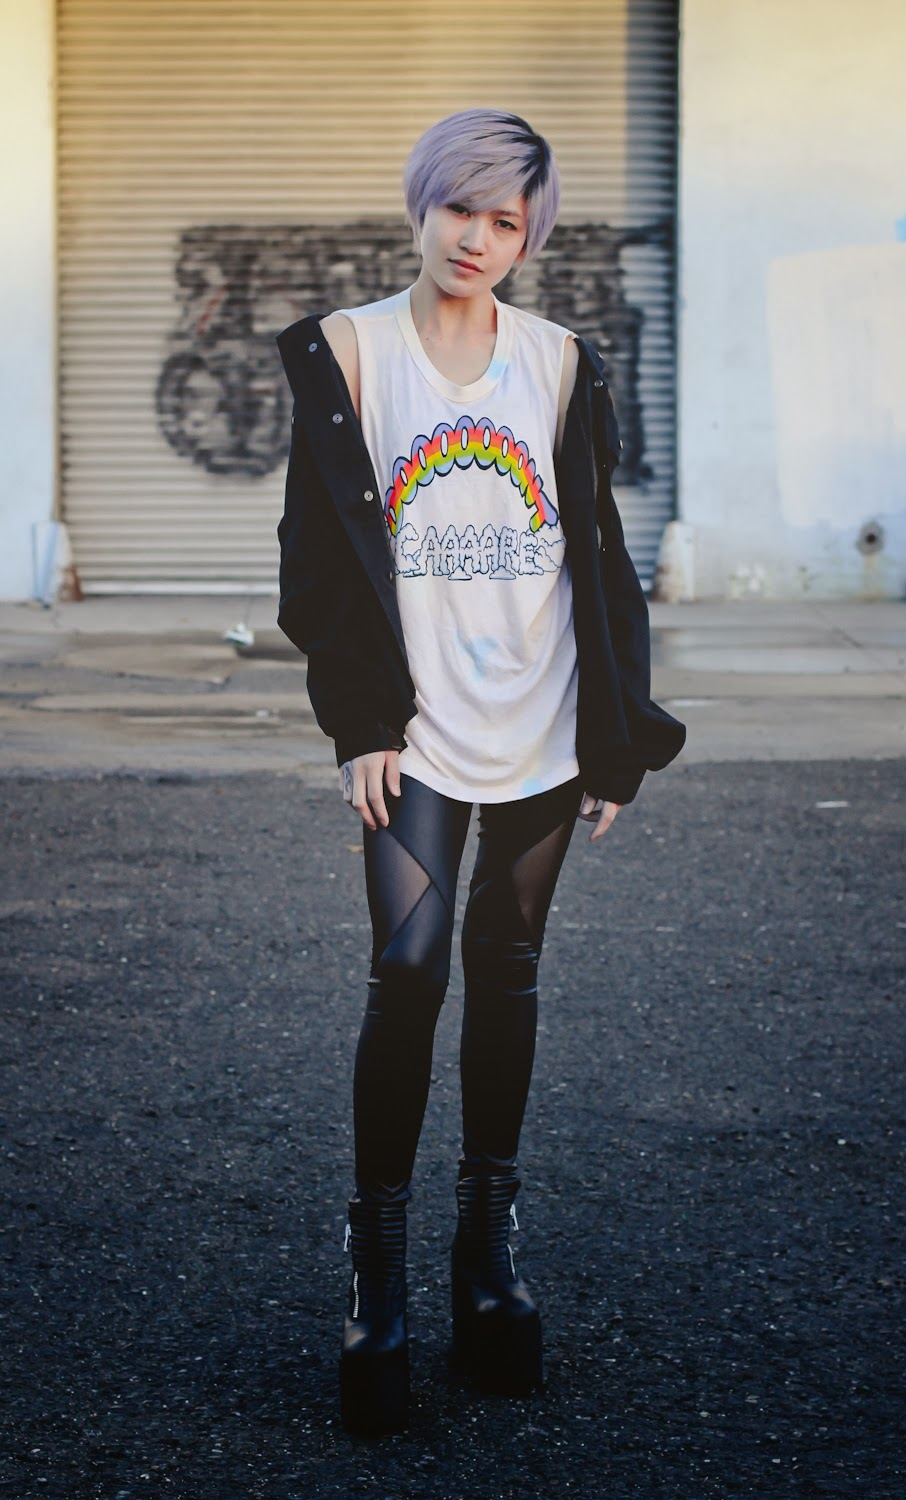 Unif Don't Care Muscle Tee, Brandy Melville Alice Military Jacket, Forever 21 Mesh Leggings, Unif Neo Boots